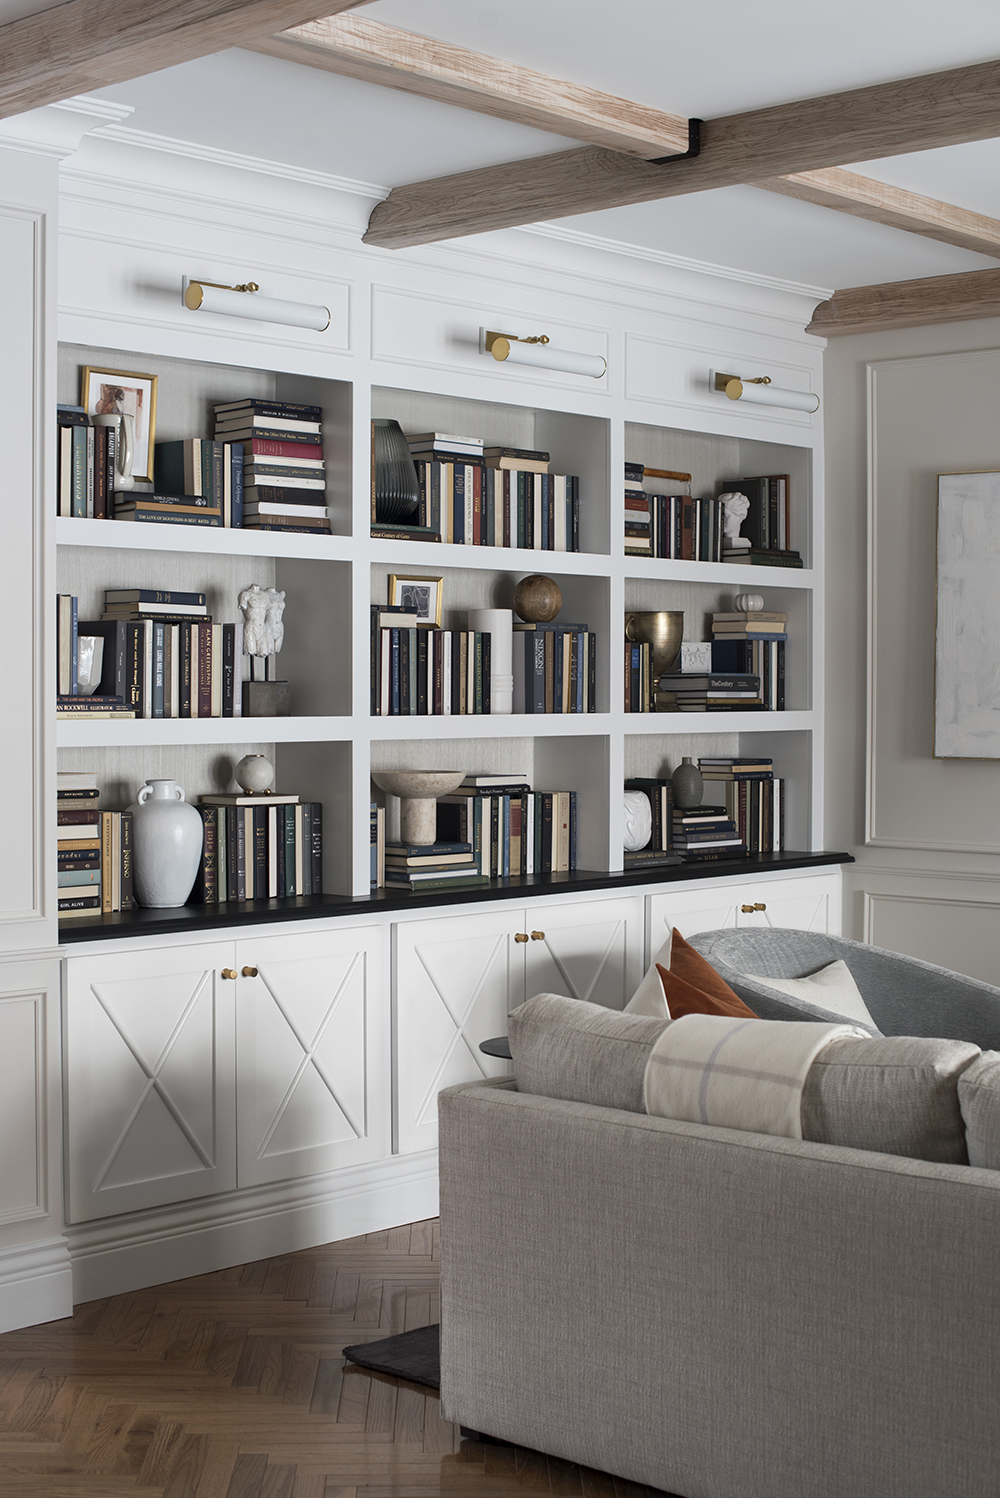 Helpful Home Improvement, Architecture, & Design Books - roomfortuesday.com